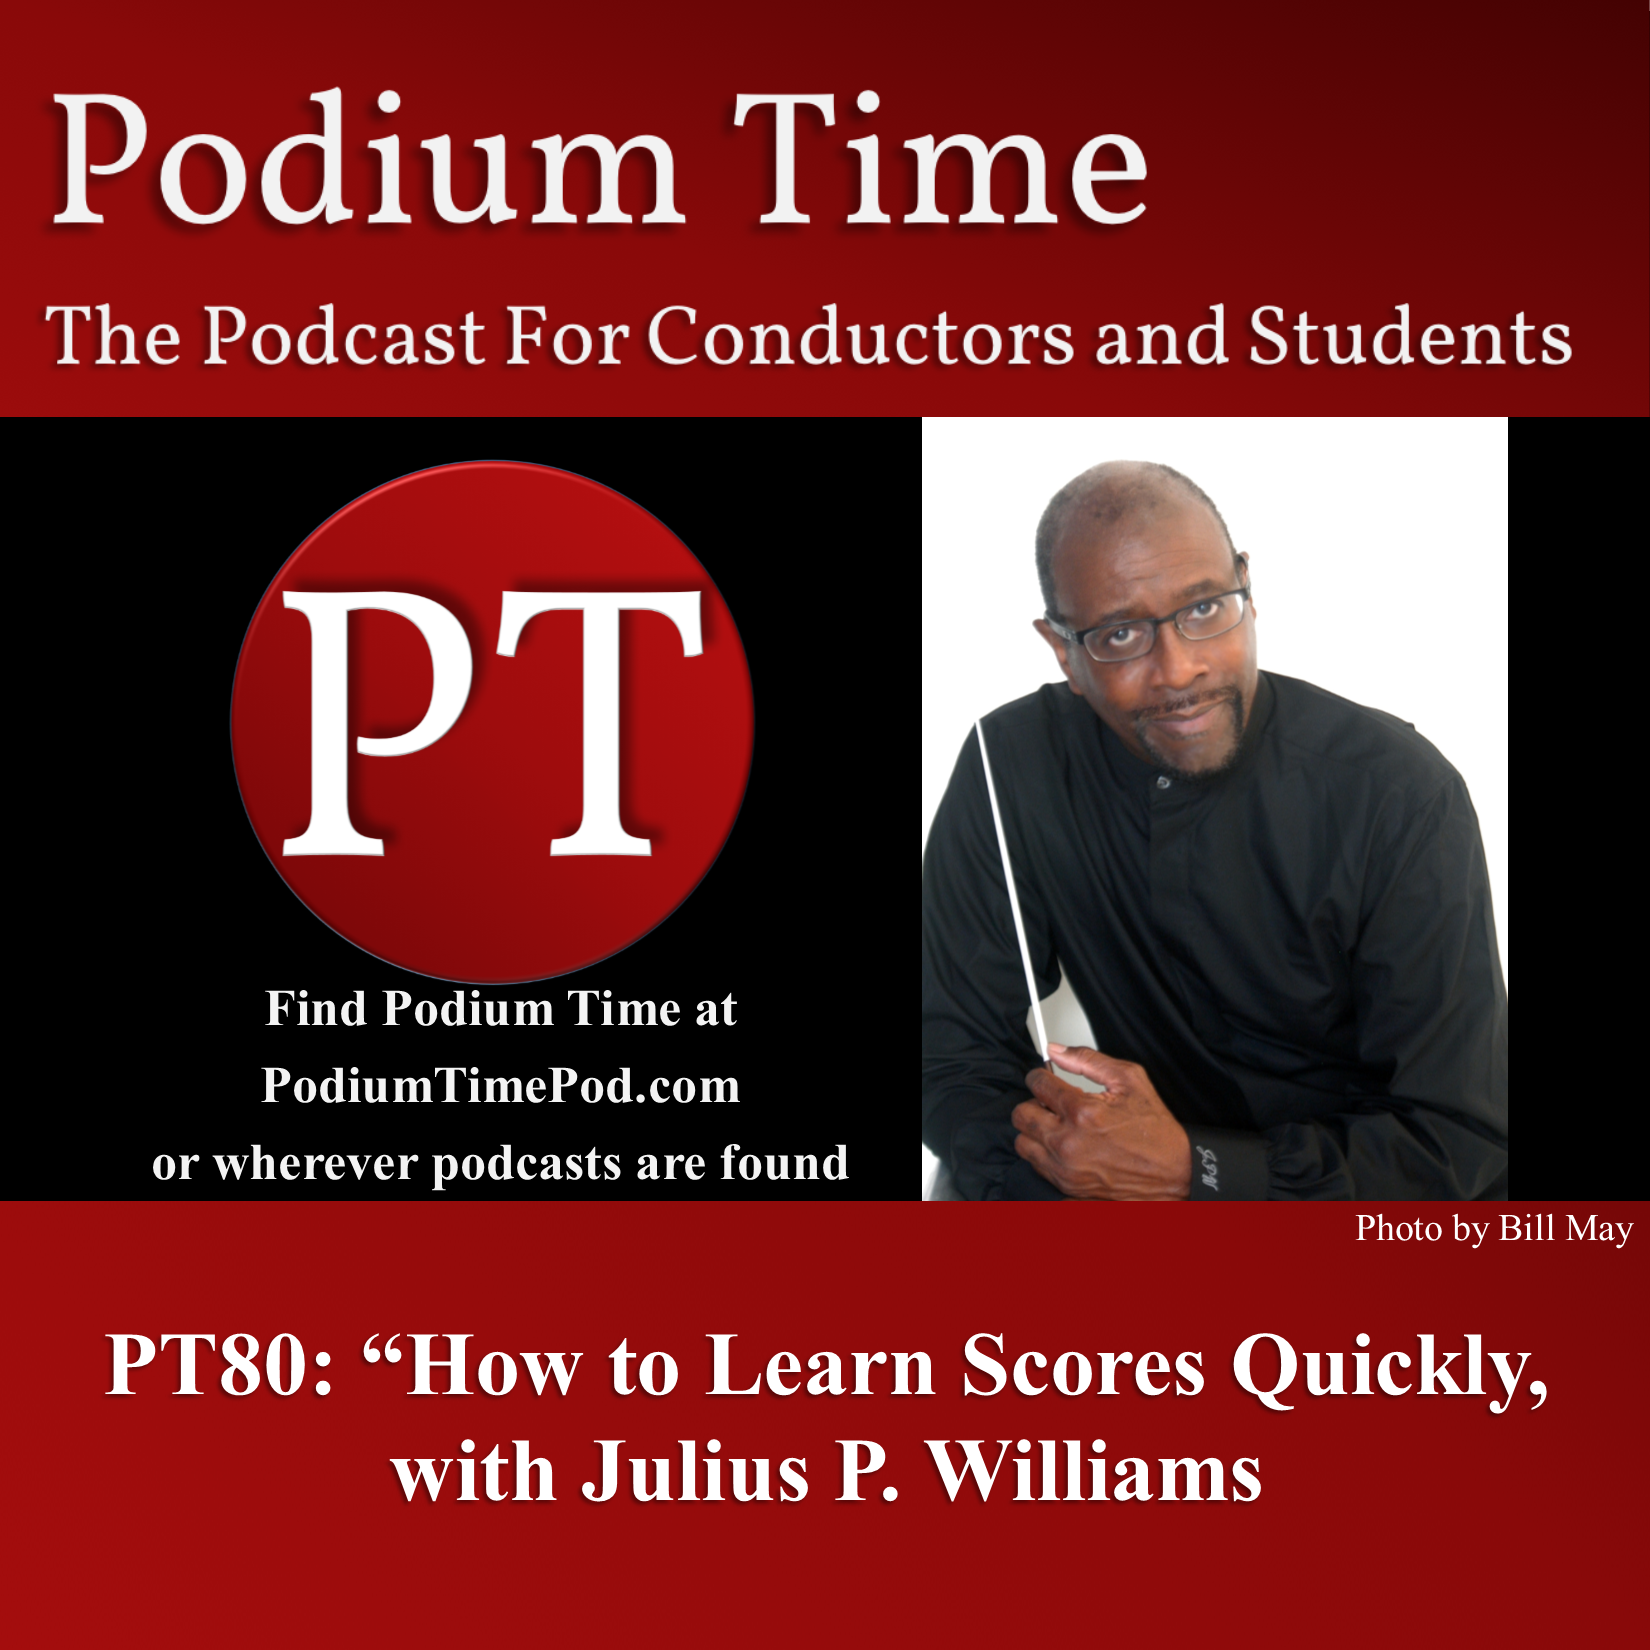 Podium Time Podcast Picture with Julius P. Williams, conductor and composer, on effective score study and learning scores quickly.